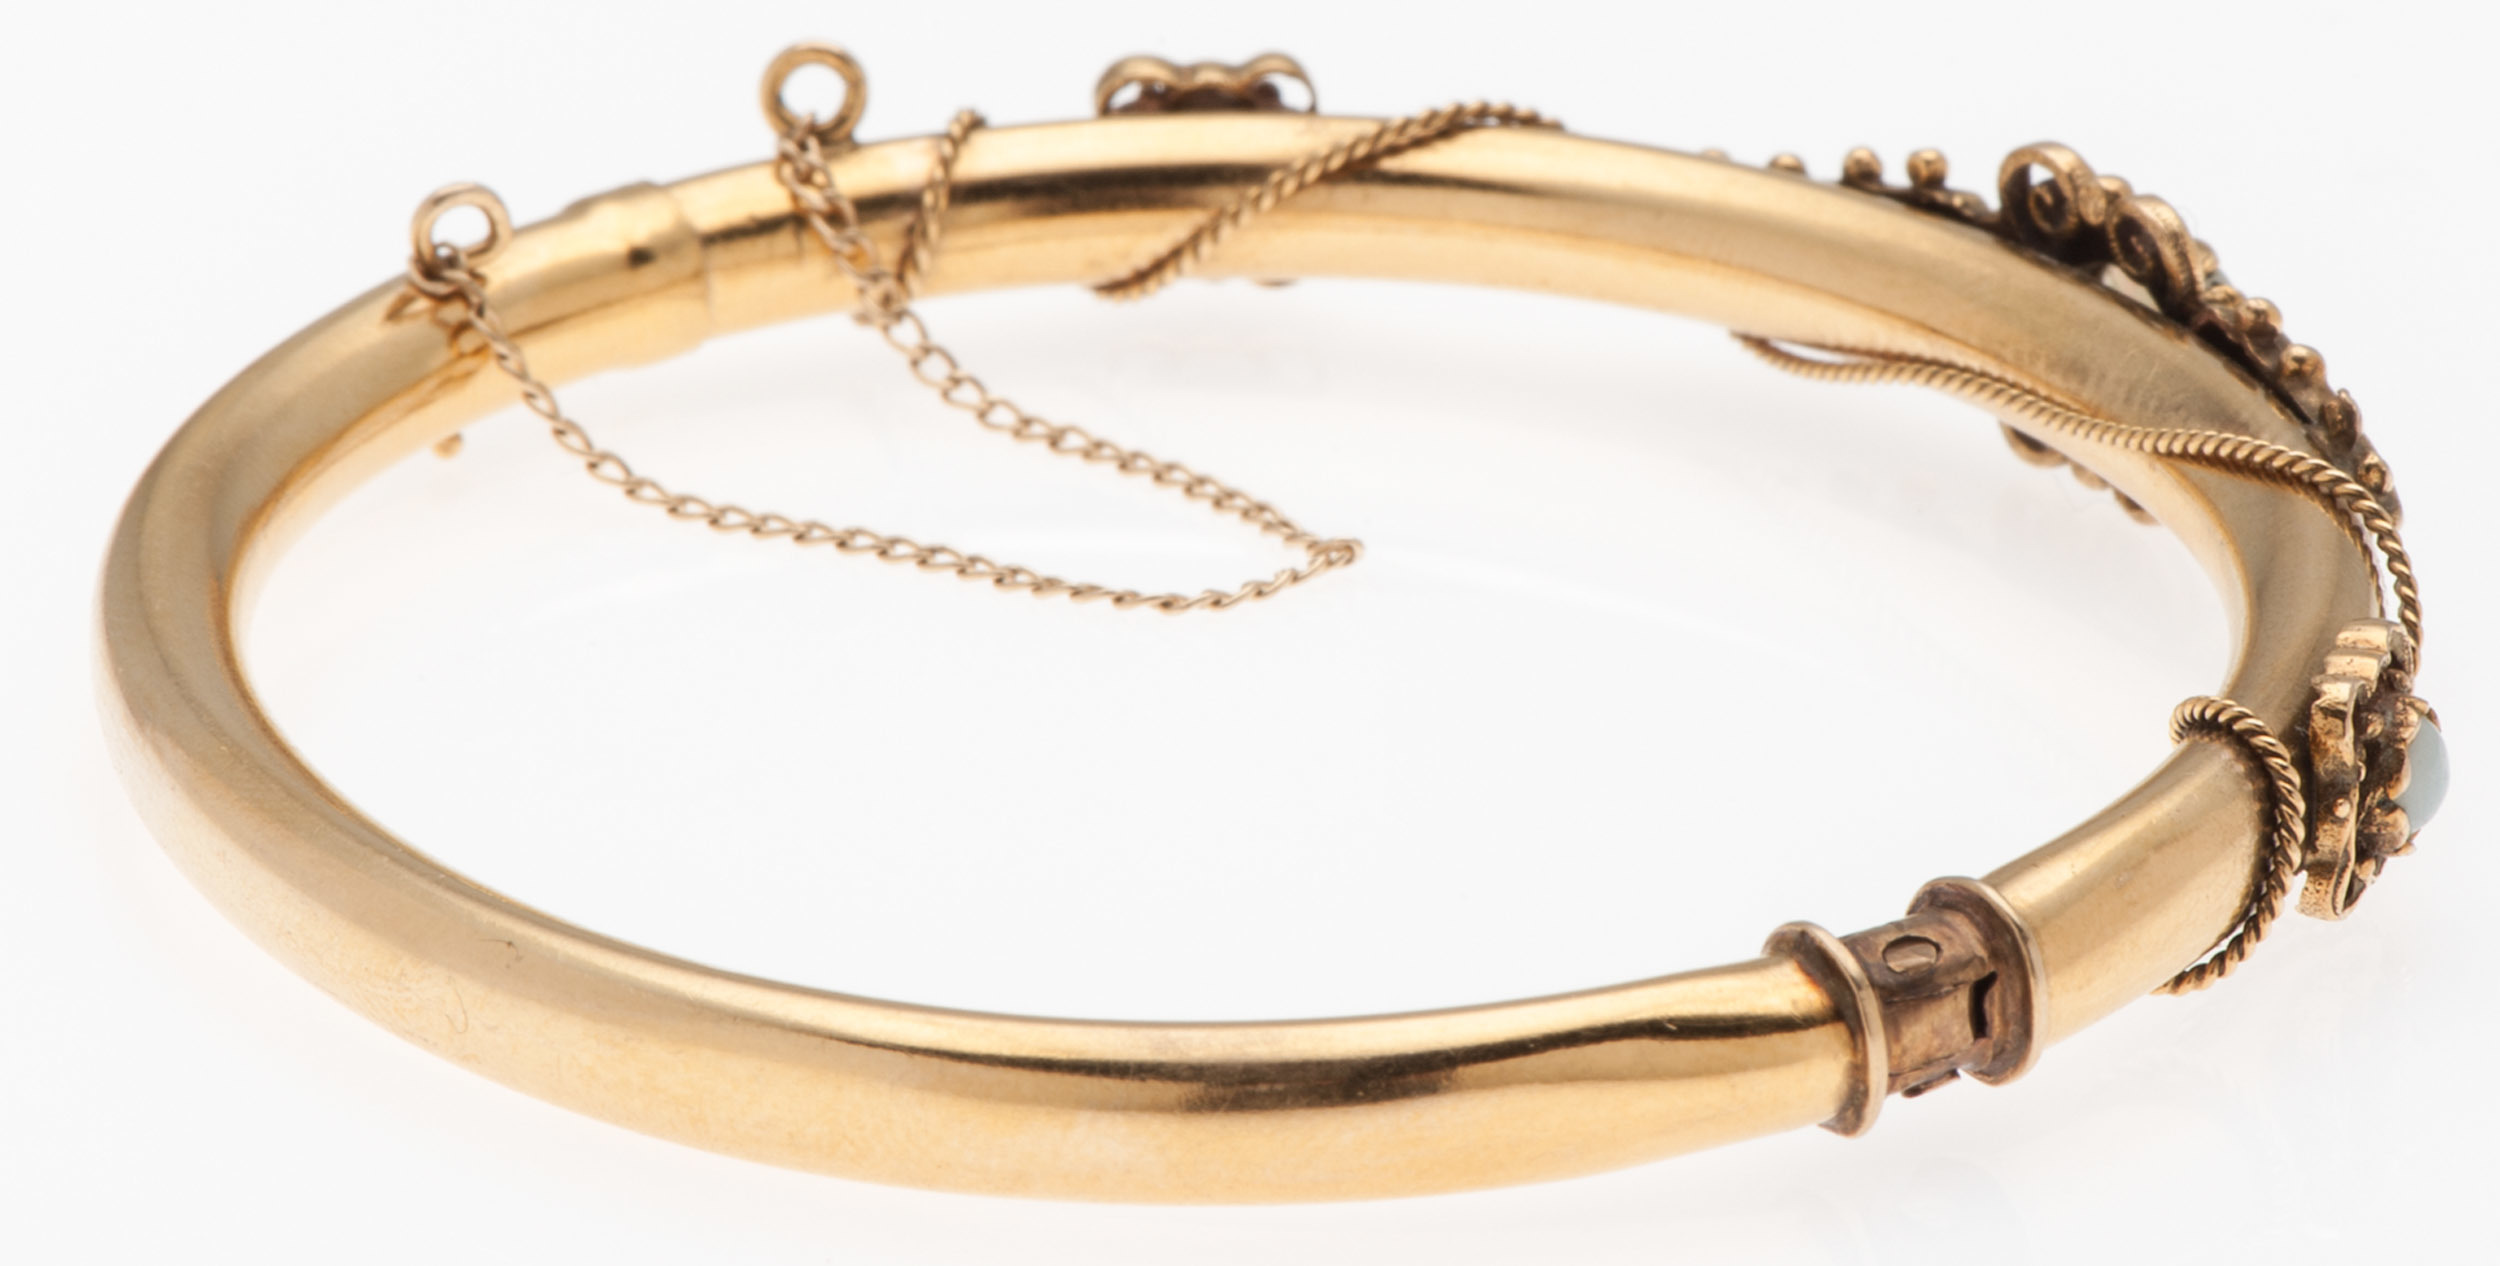 Opal Bangle Bracelet In 14 Karat Yellow Gold  Cowan's. Sterling Silver Heart Anklet. Guys Wedding Rings. Computer Watches. Rectangle Engagement Rings. Thin Platinum Band. Paper Bands. Logo Watches. Halo Bands